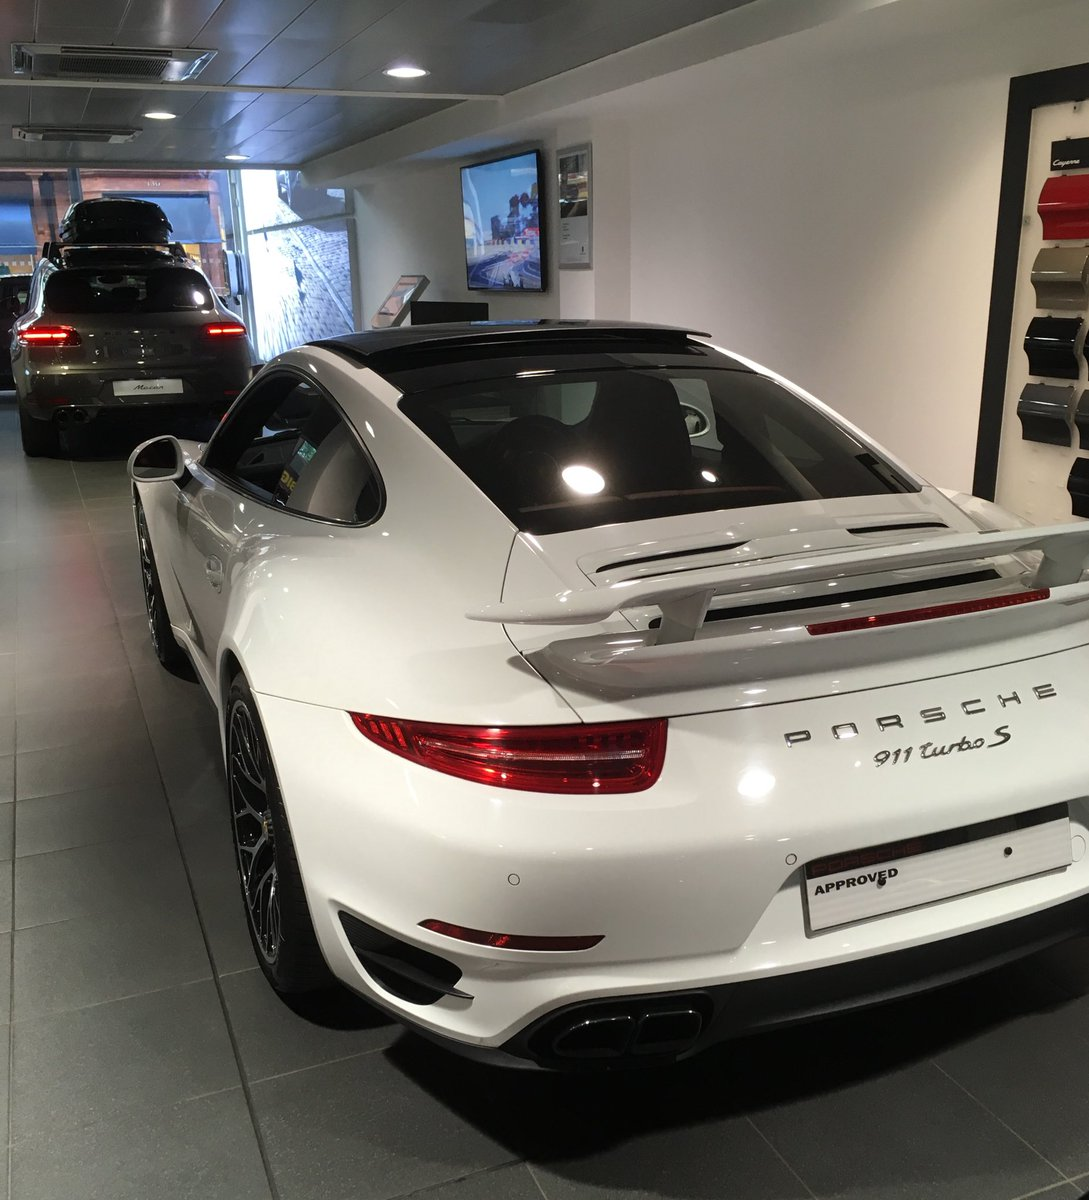 It&#39;s a #TurboTuesday taken in #London #PorscheMayfair  @PorscheRetail @BCJr @fokkerdude @PrestigeDiesels @CarSnapped @CalgaryPorsche<br>http://pic.twitter.com/0fPQh7cRSe